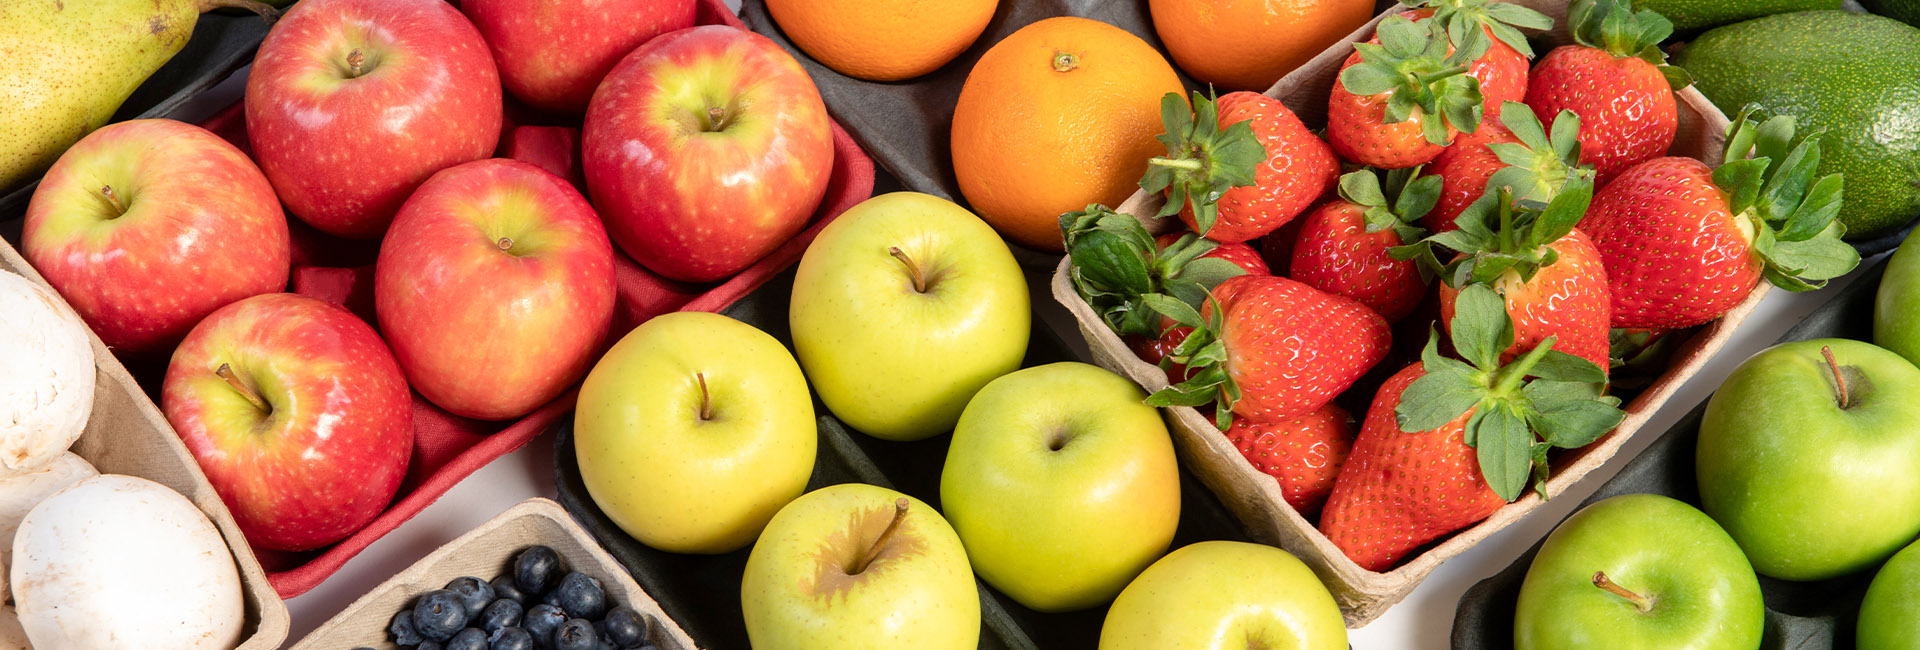 Moulded pulp produce trays for pears, avocado, apples and more from Cullen